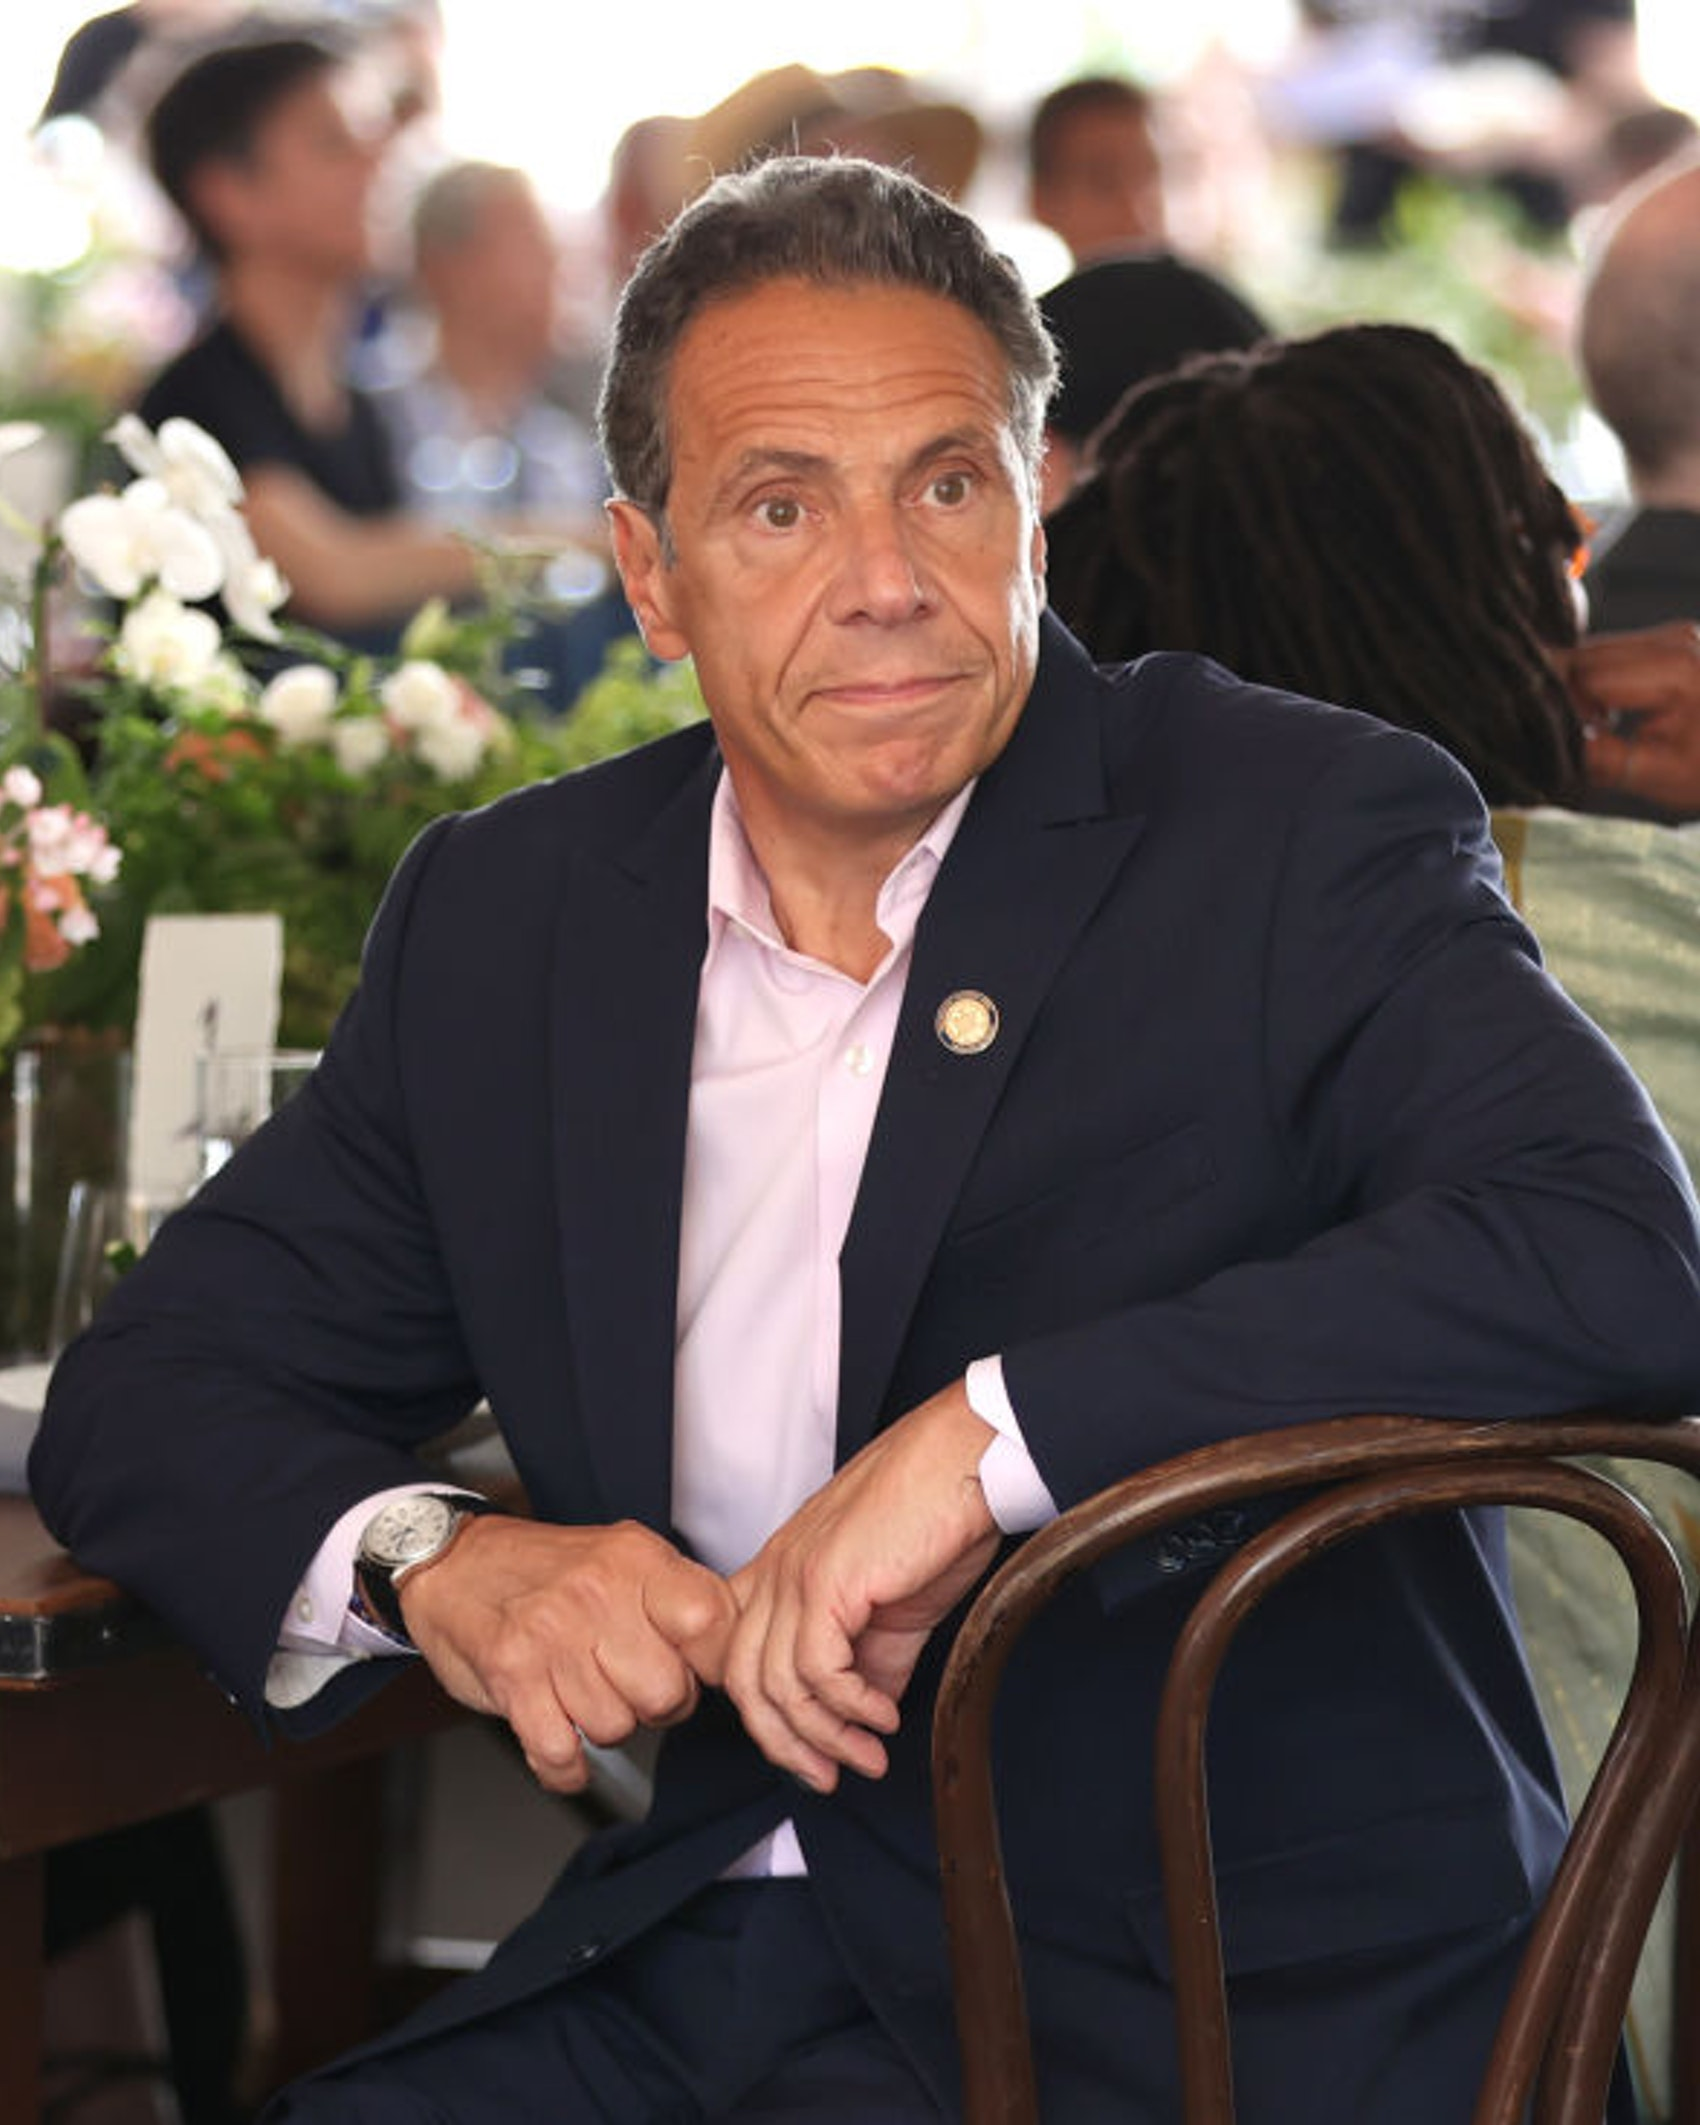 Governor of New York Andrew Cuomo attends the Tribeca Festival Welcome Lunch during the 2021 Tribeca Festival at Pier 76 on June 09, 2021 in New York City.